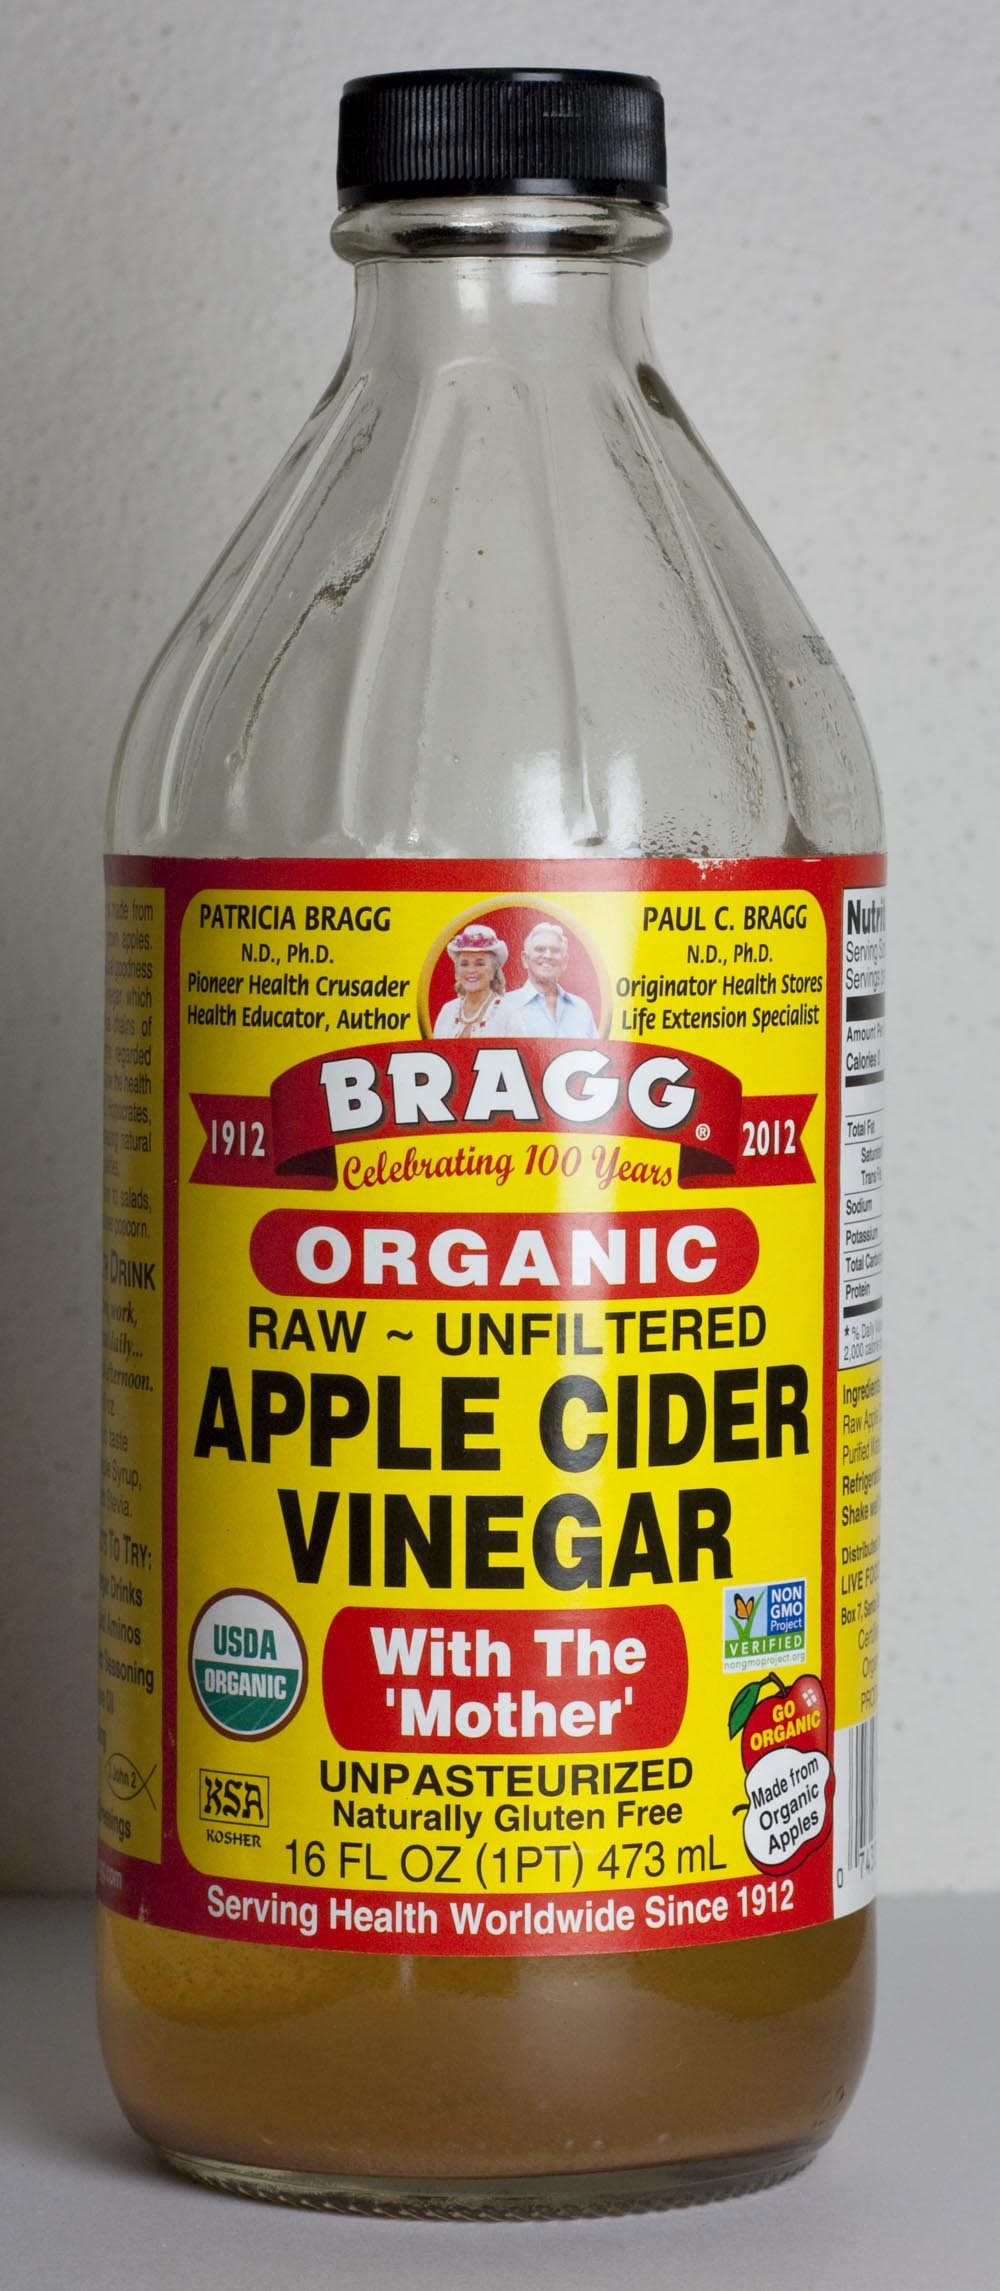 I like to use organic cider vinegar to avoid any pesticide residues from the apples. Proper dilution with water in necessary to avoid damaging hair from the high acidity.